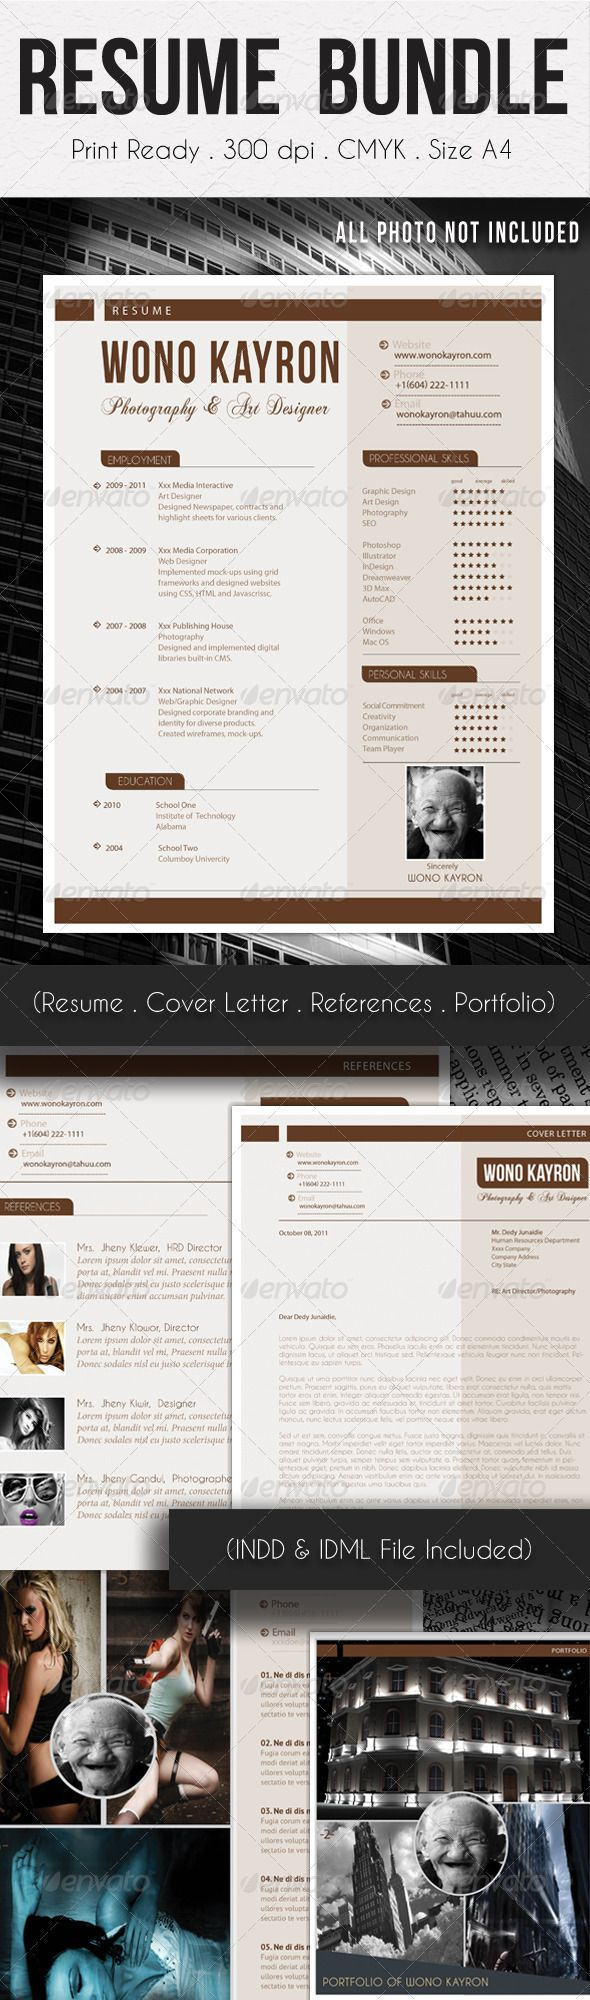 Resume Bundle Templates with Portfolio 23 best